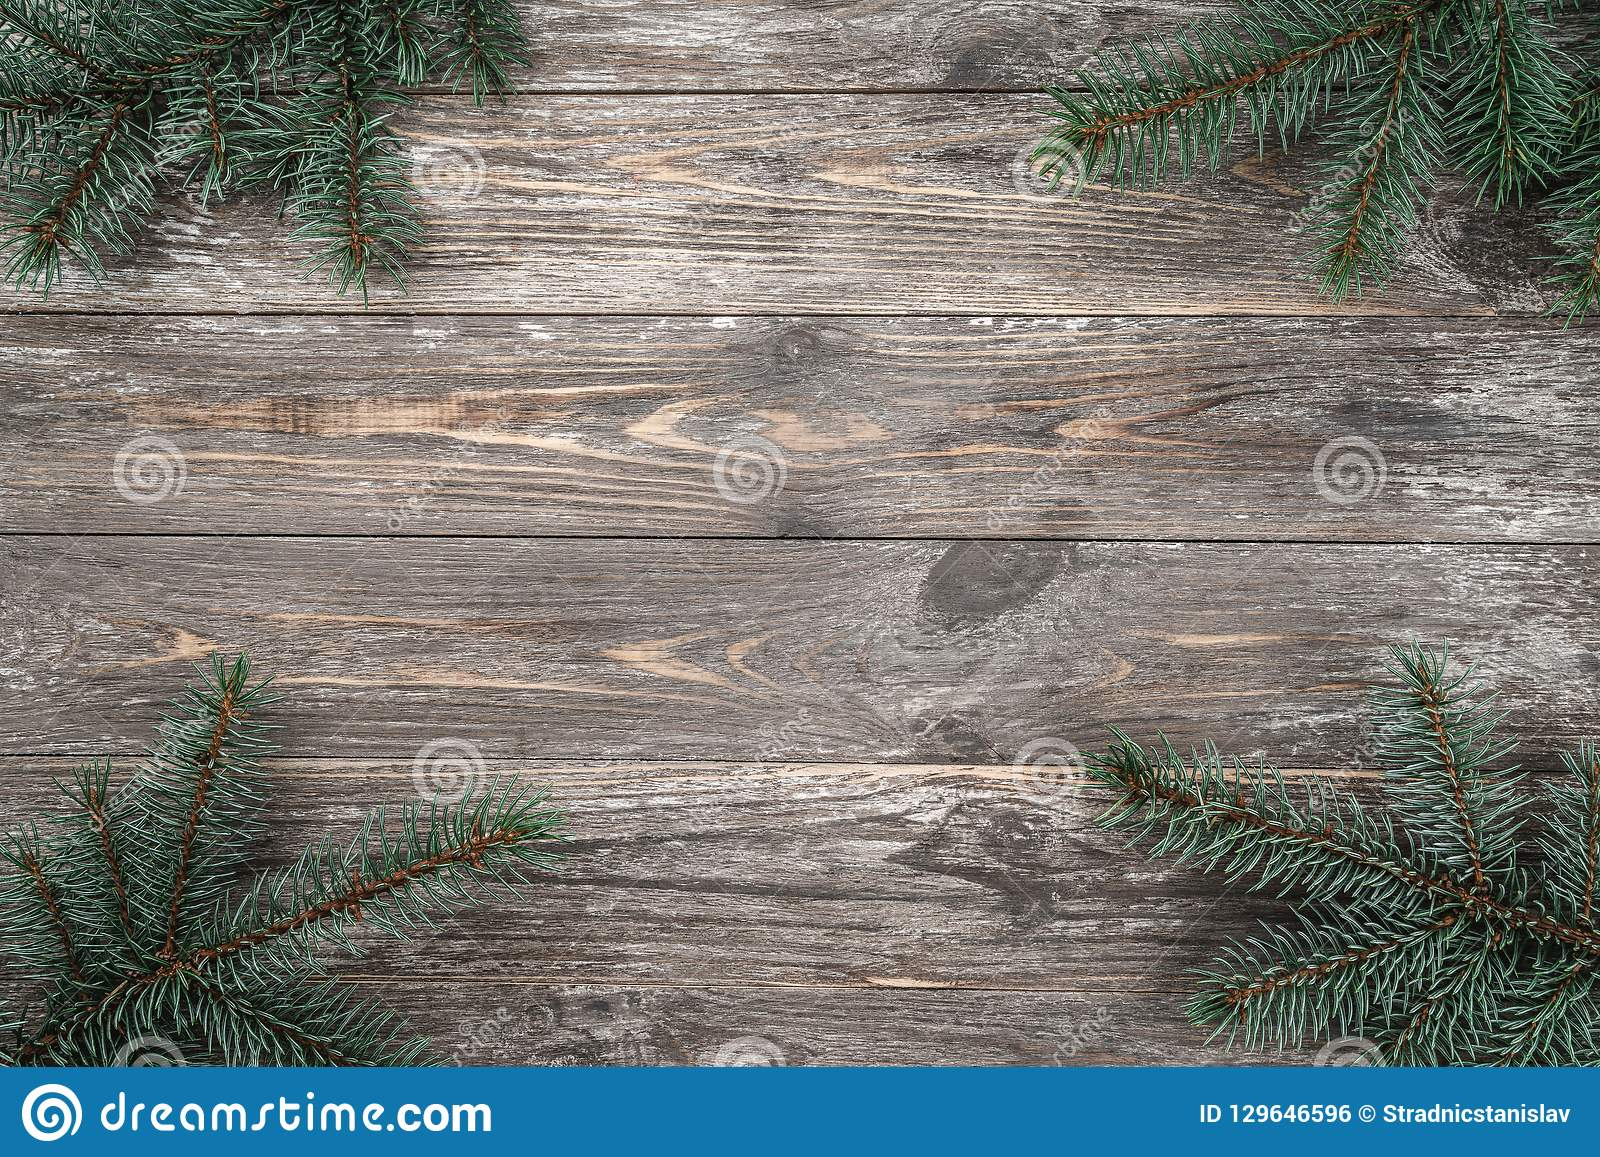 Old wood background with fir branches. Space for a greeting message. Christmas card. Top view